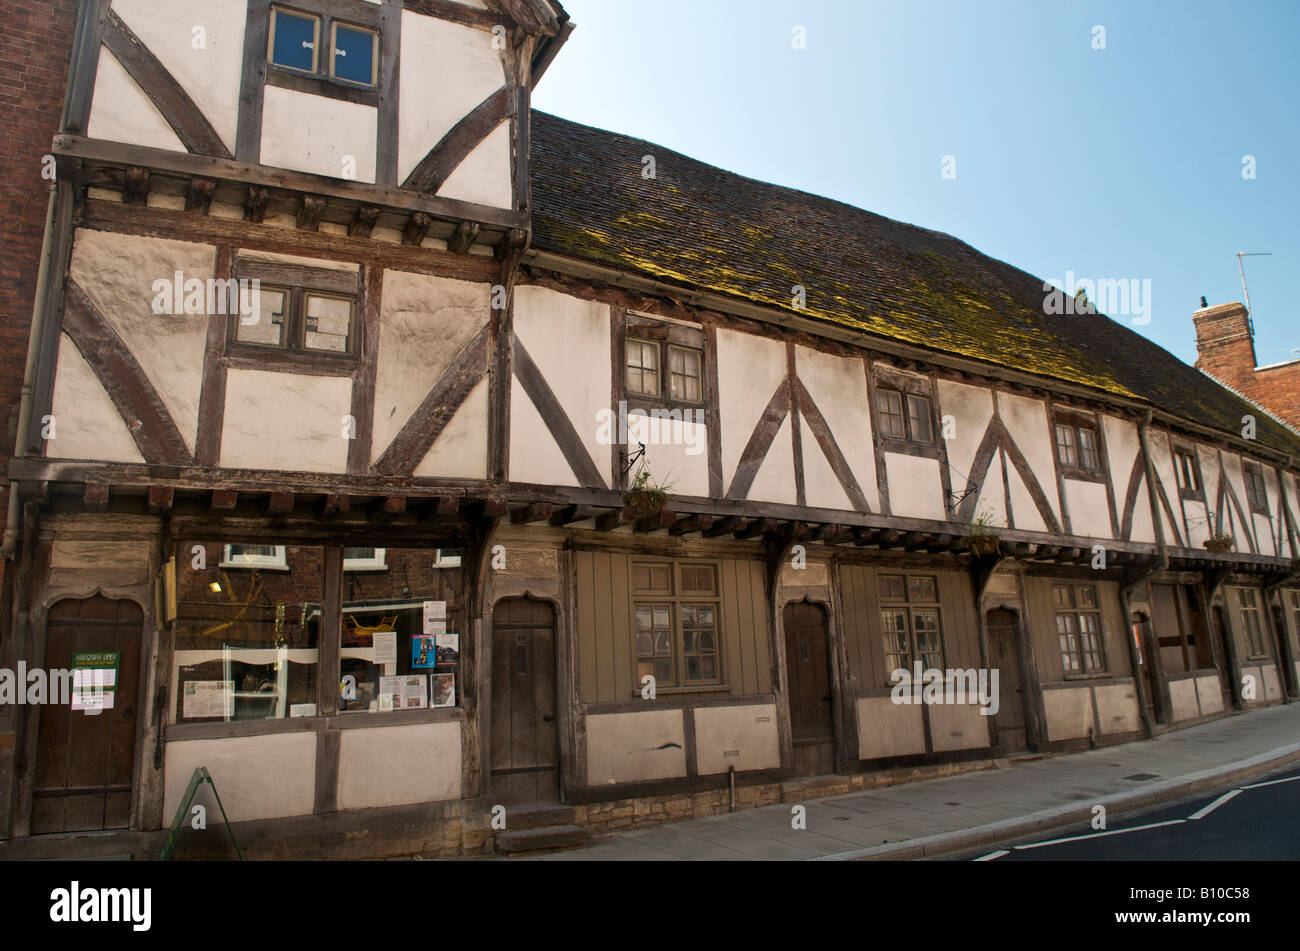 The Merchant's House (Little Museum) and Abbey Row Cottages in Tewkesbury - Stock Image